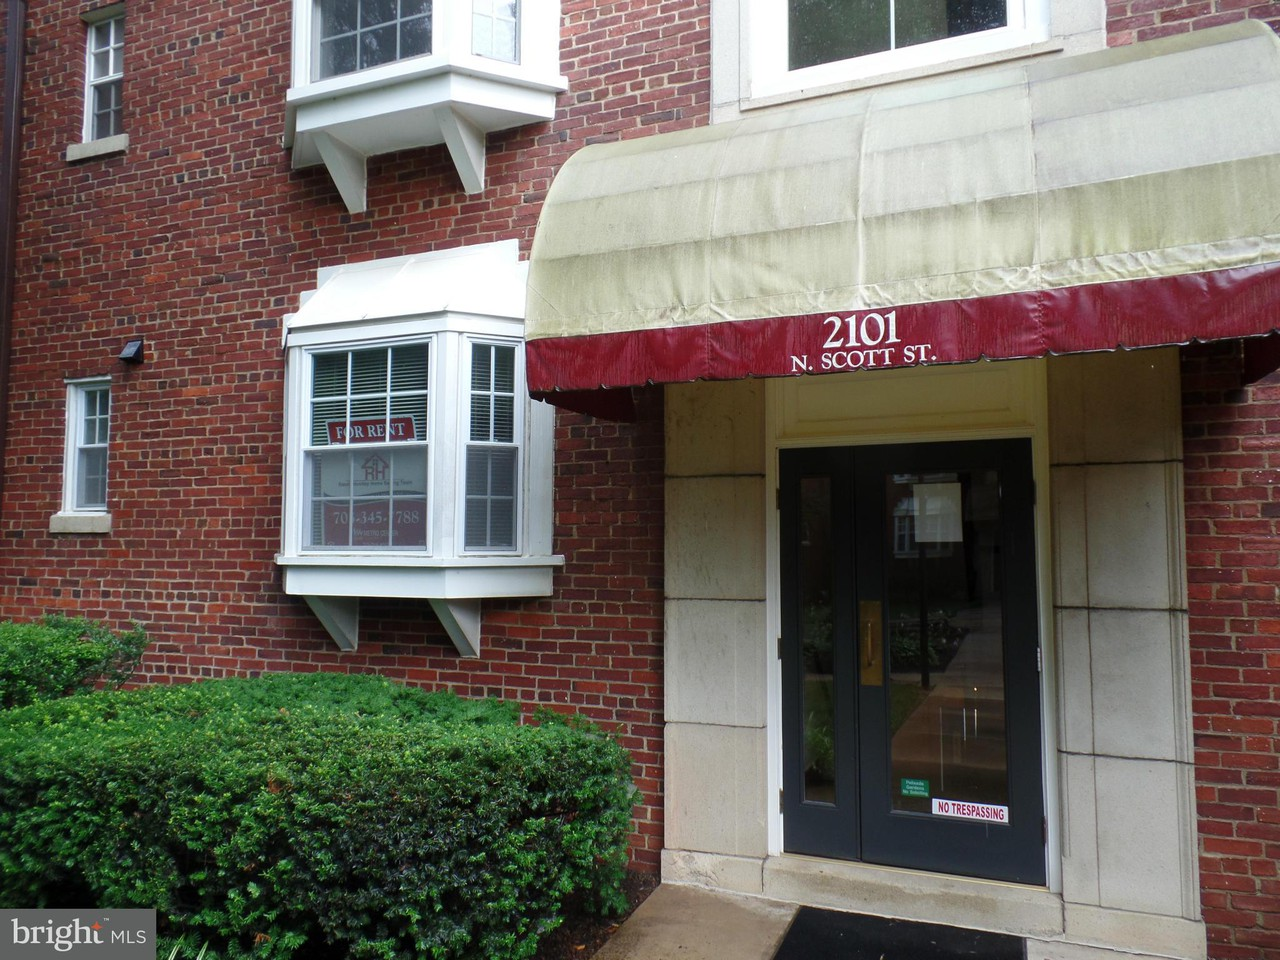 2101 N Scott St #94 · Apartment For Rent